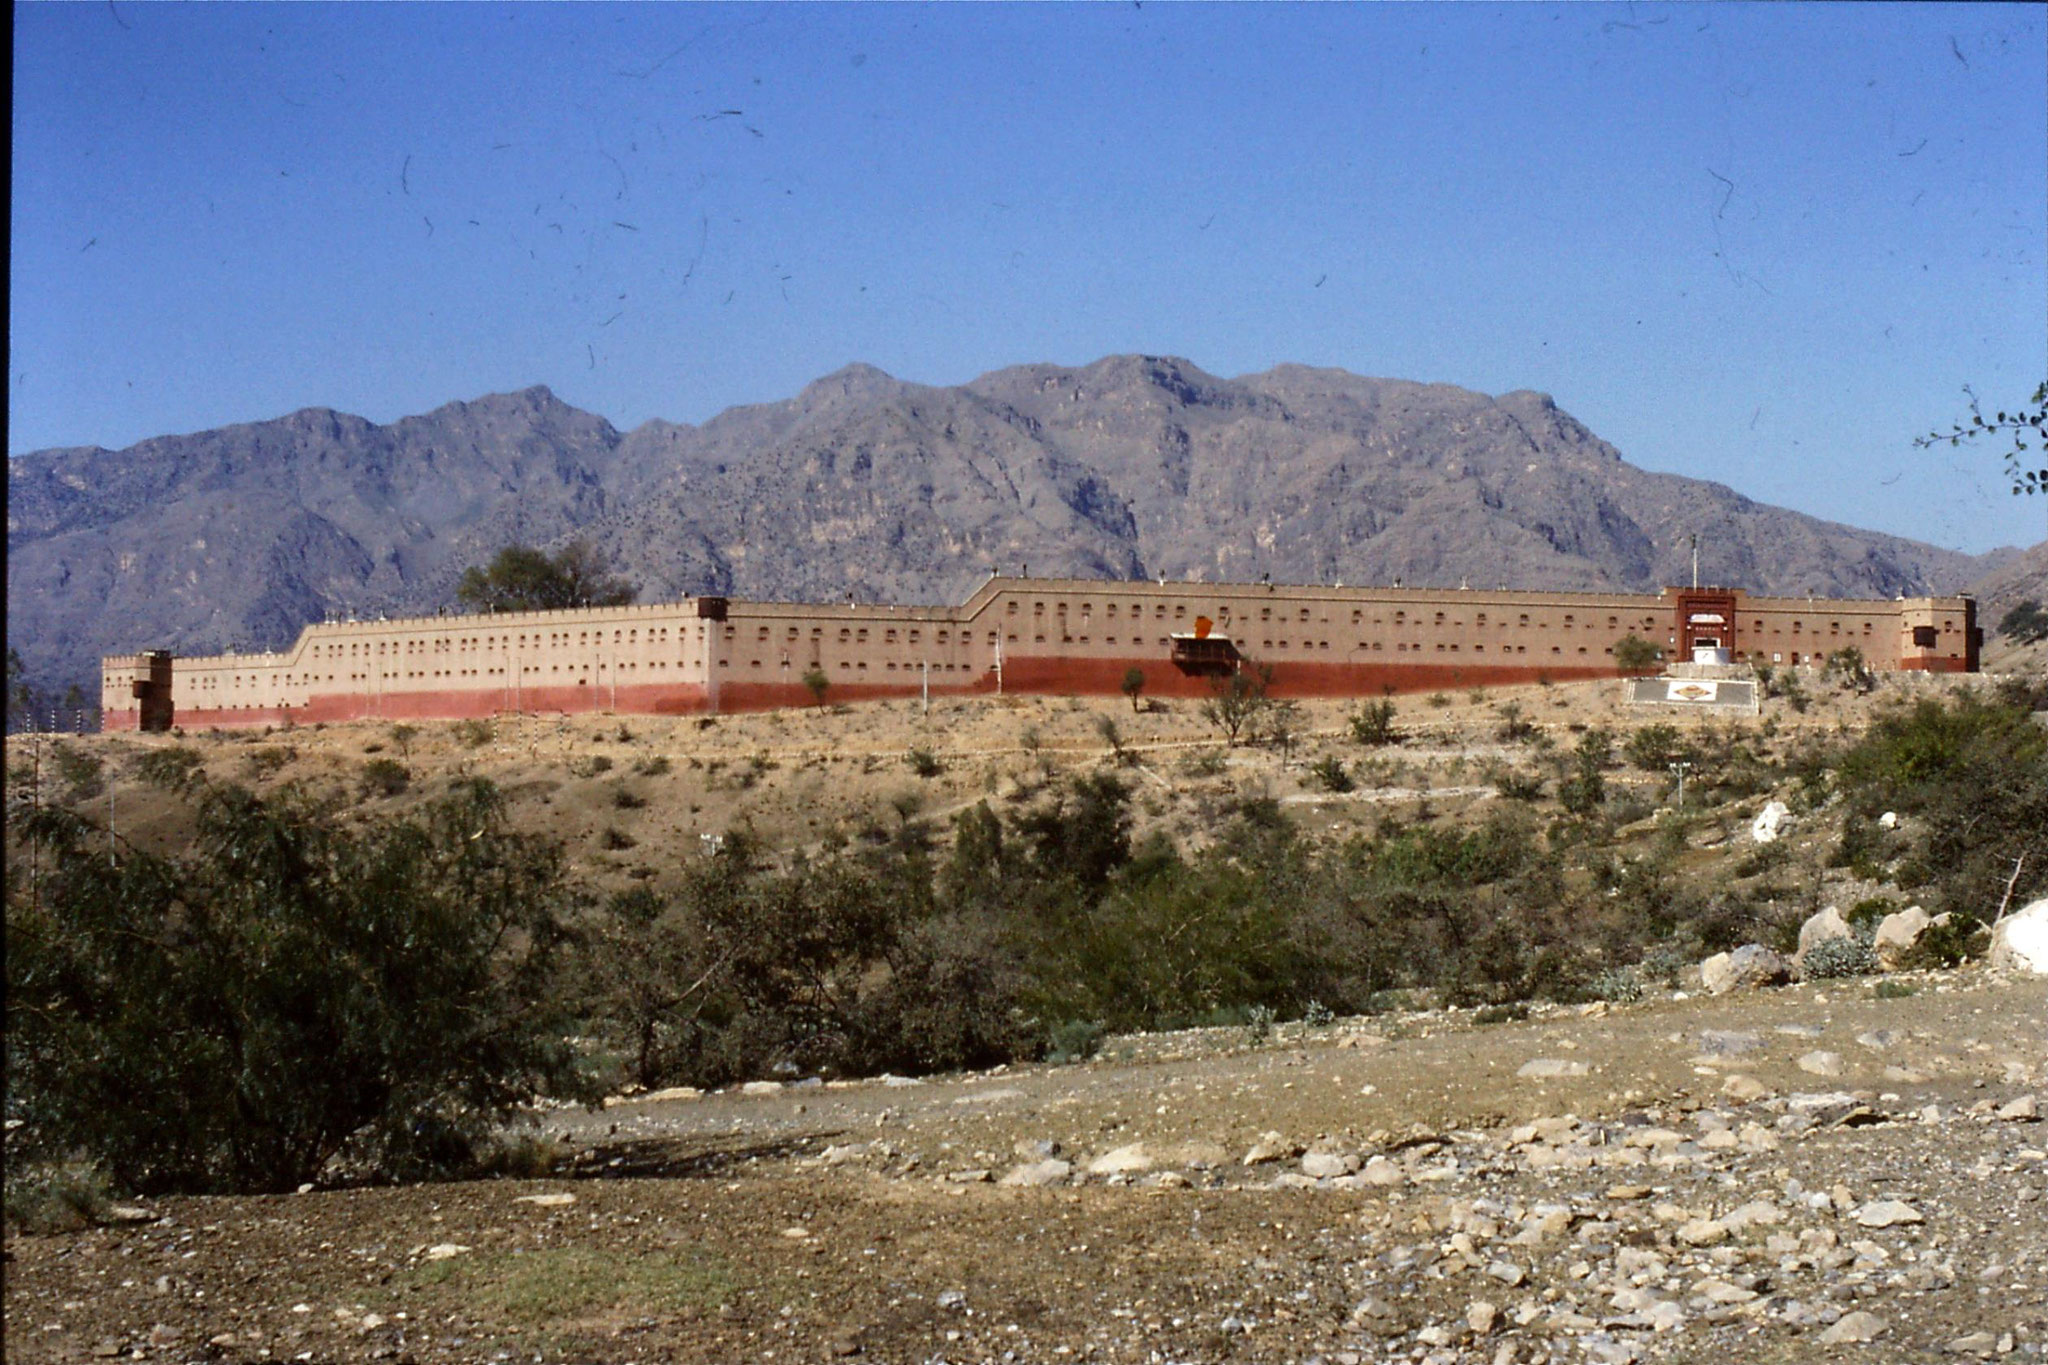 6/11/1989: 19: Khyber Pass Punjab regimental fort 'Shagai'